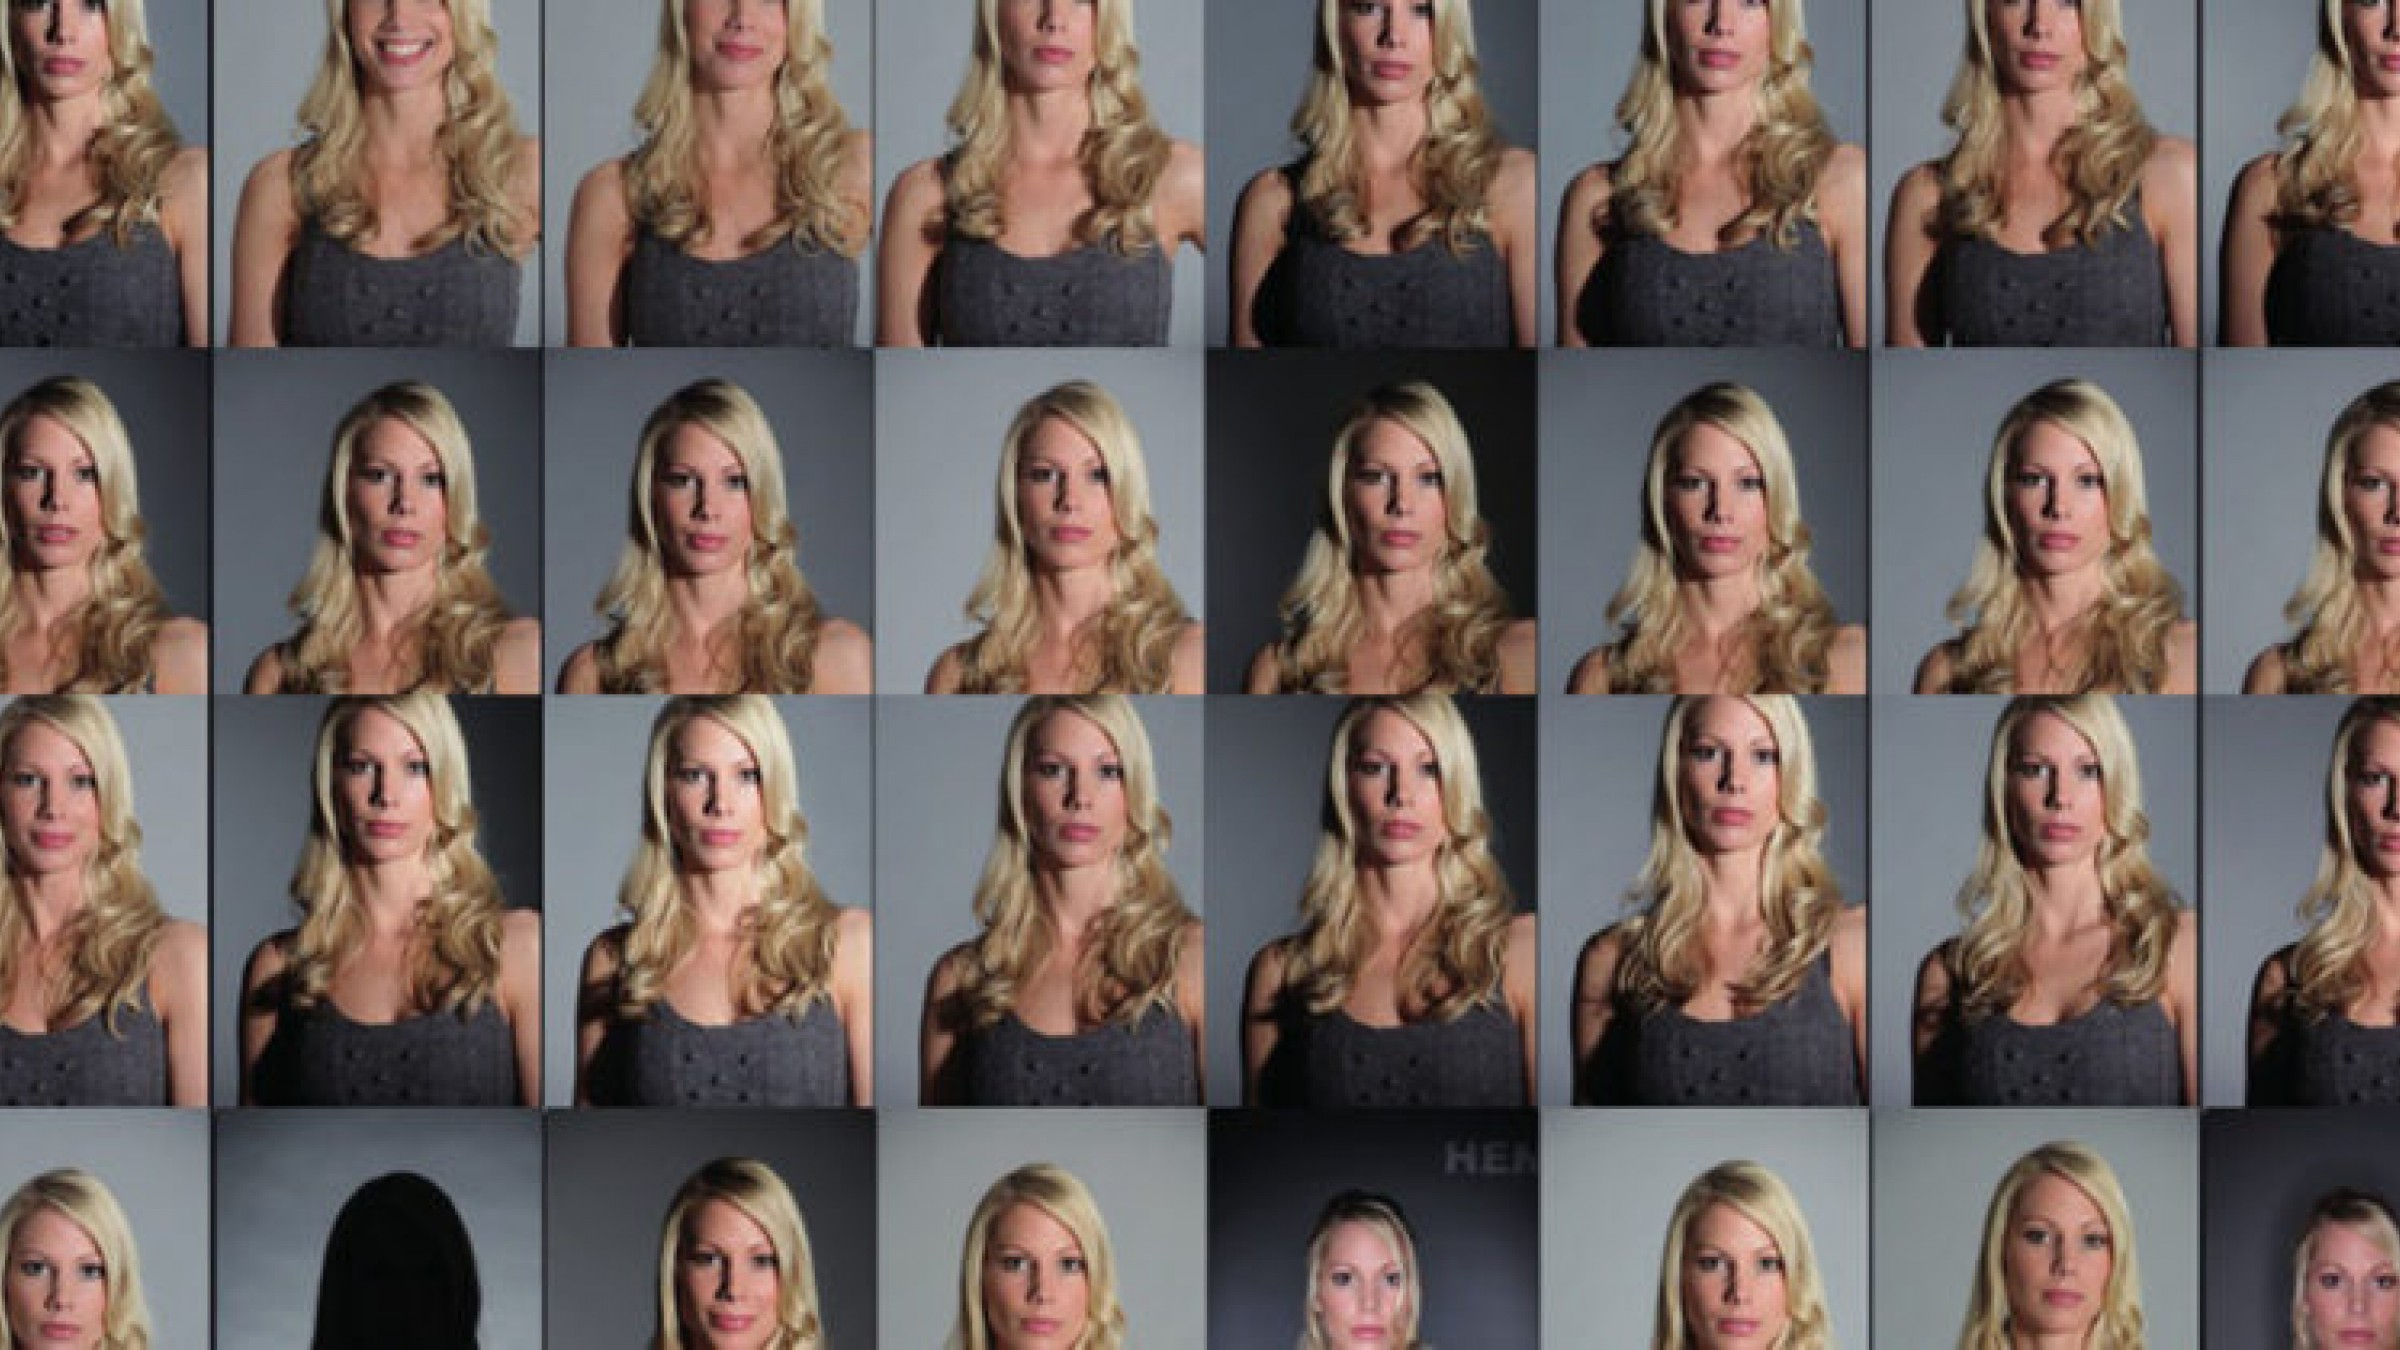 111 Ways to Use Lights and Modifiers to Get Different Looks